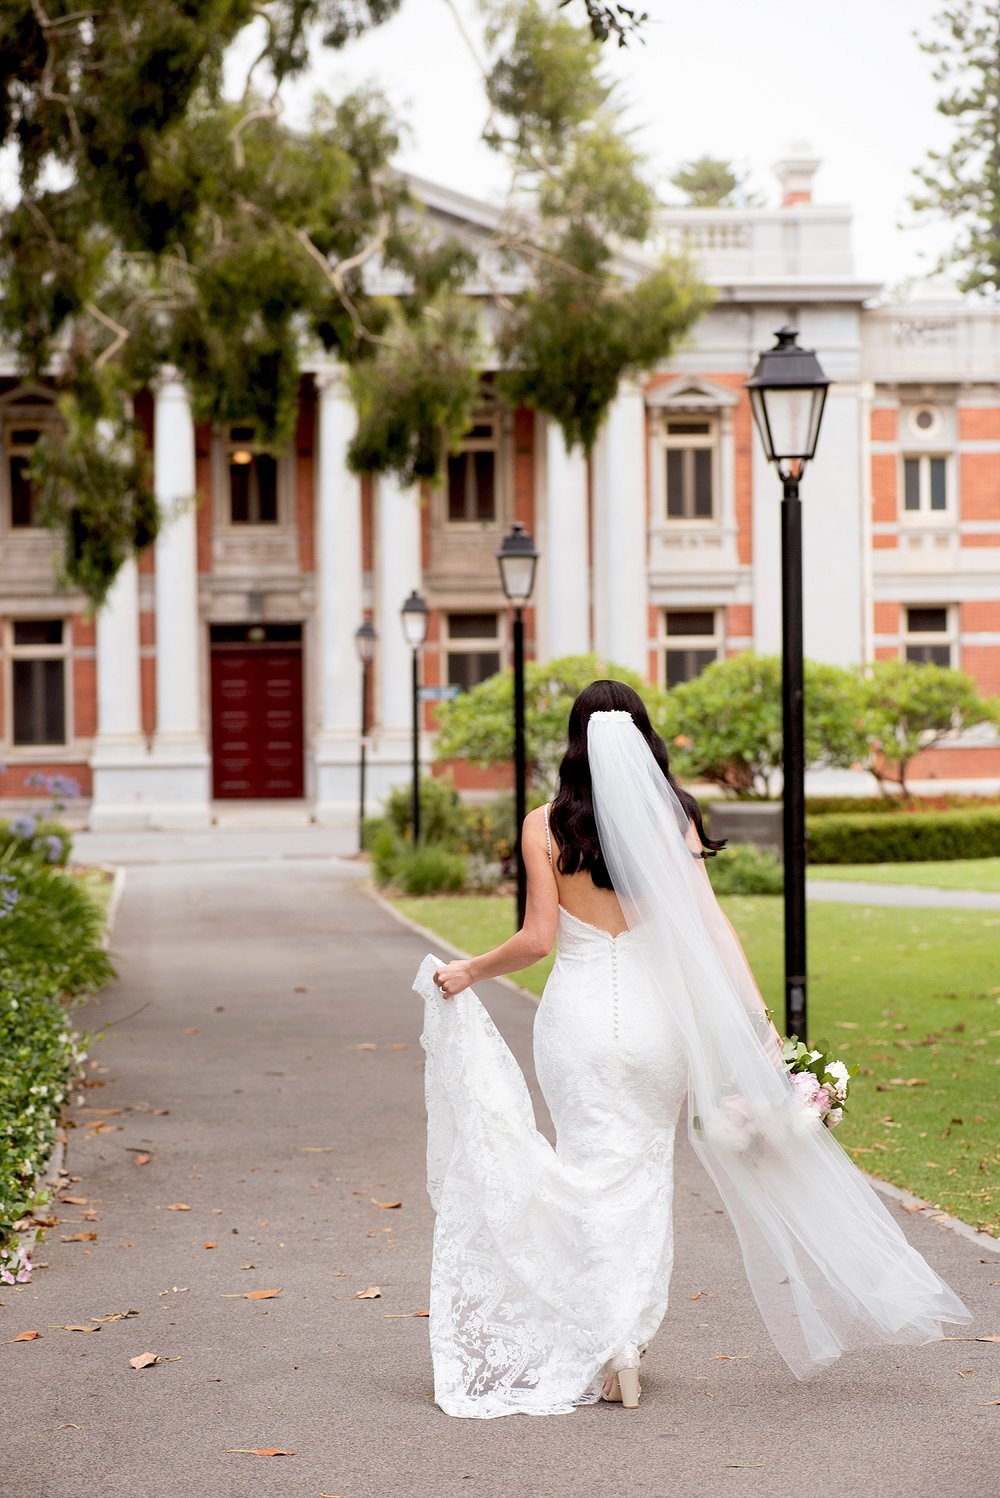 45_Perth wedding Supreme Court building.jpg